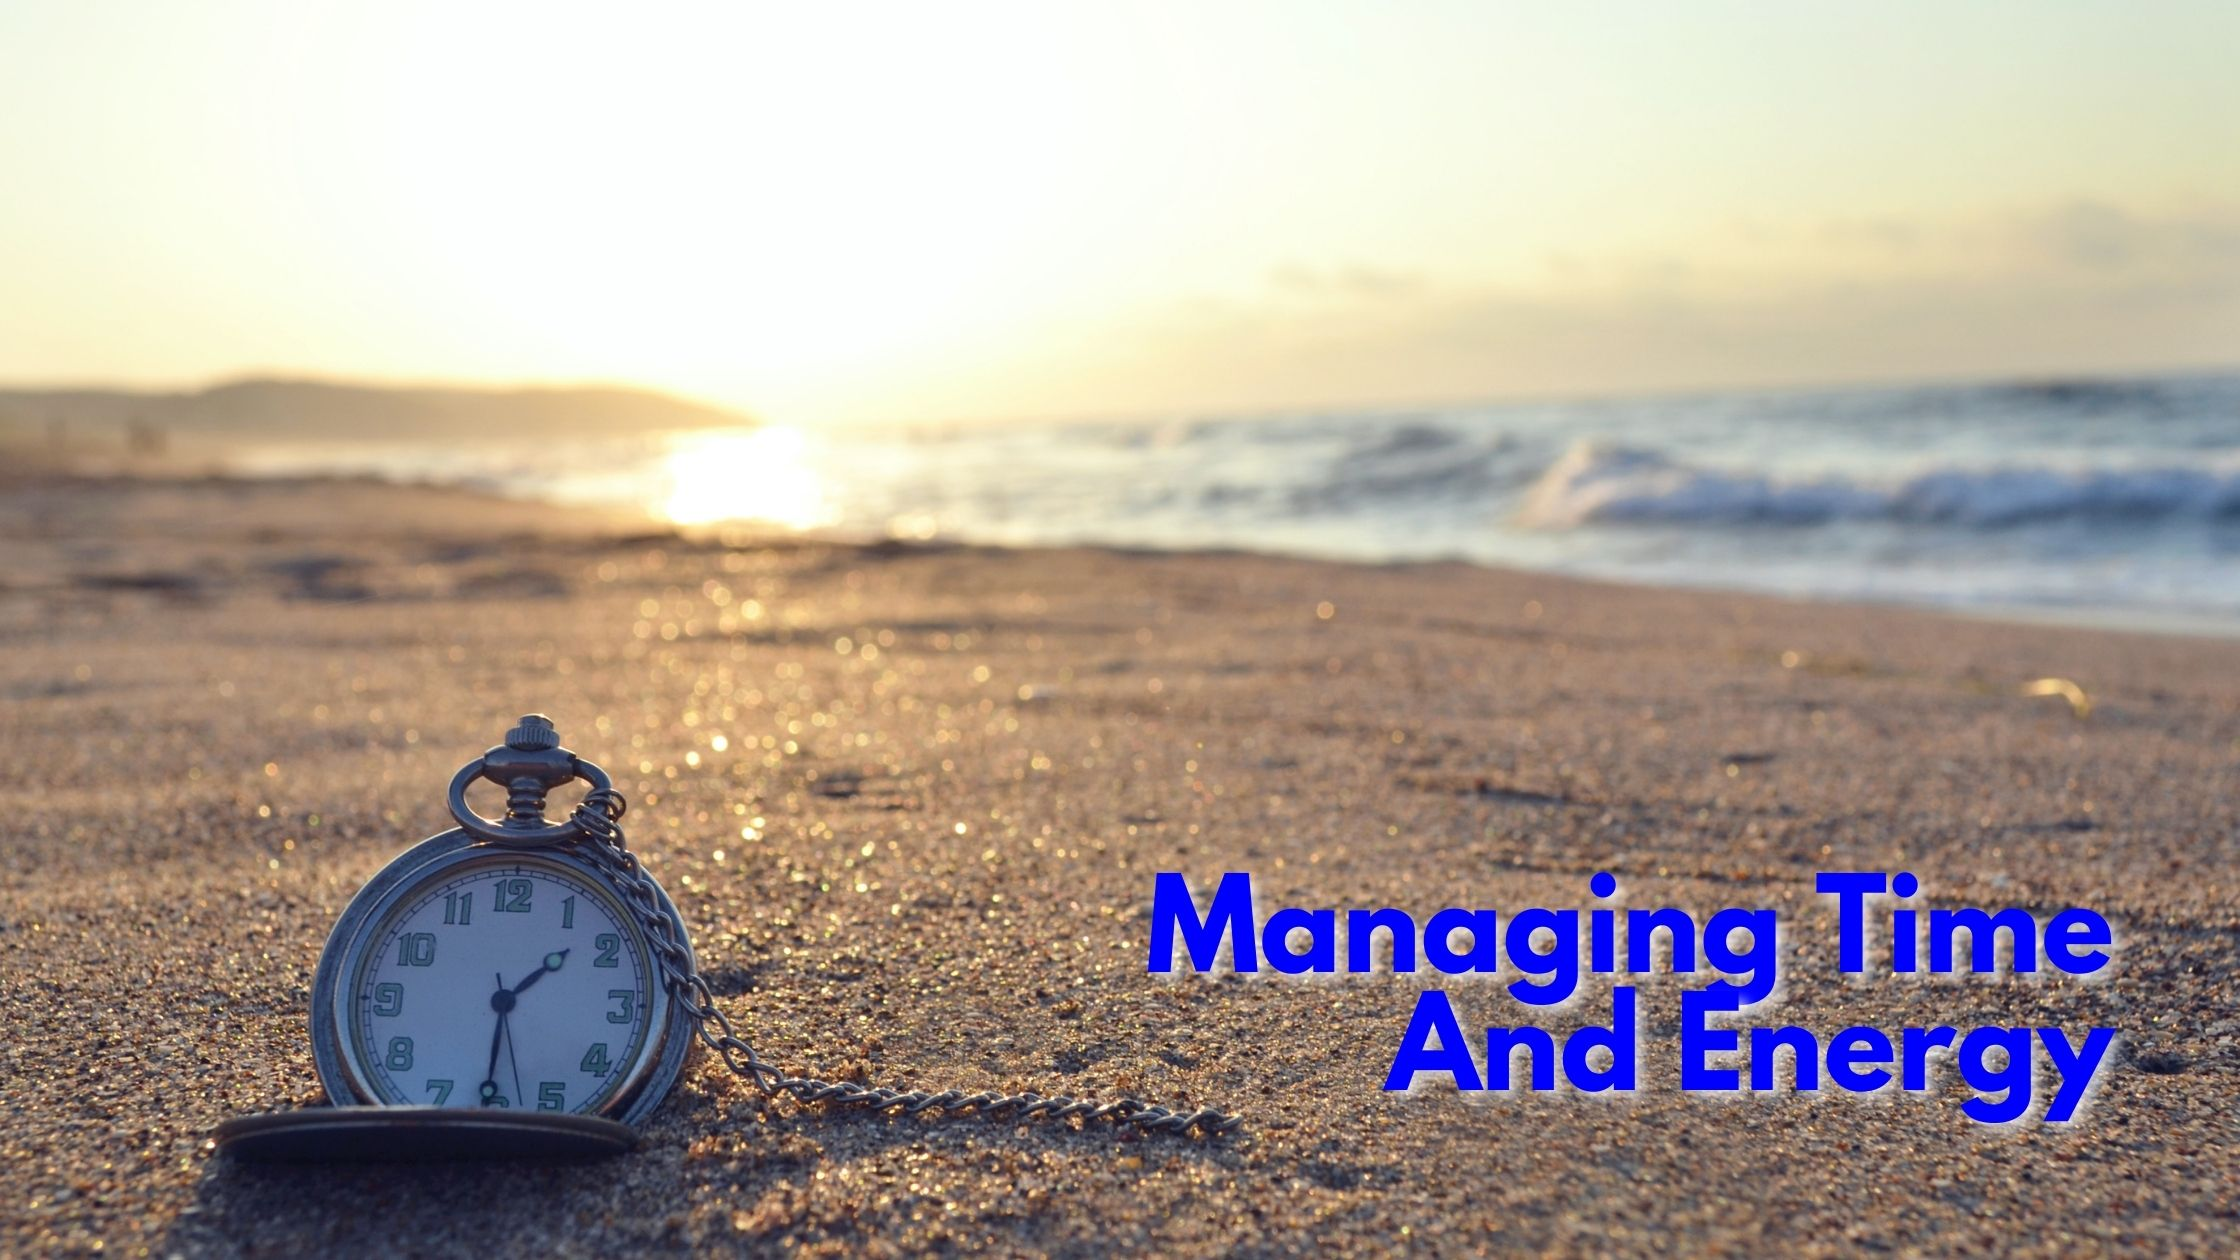 Managing Time and Energy wealthbuildertips.com